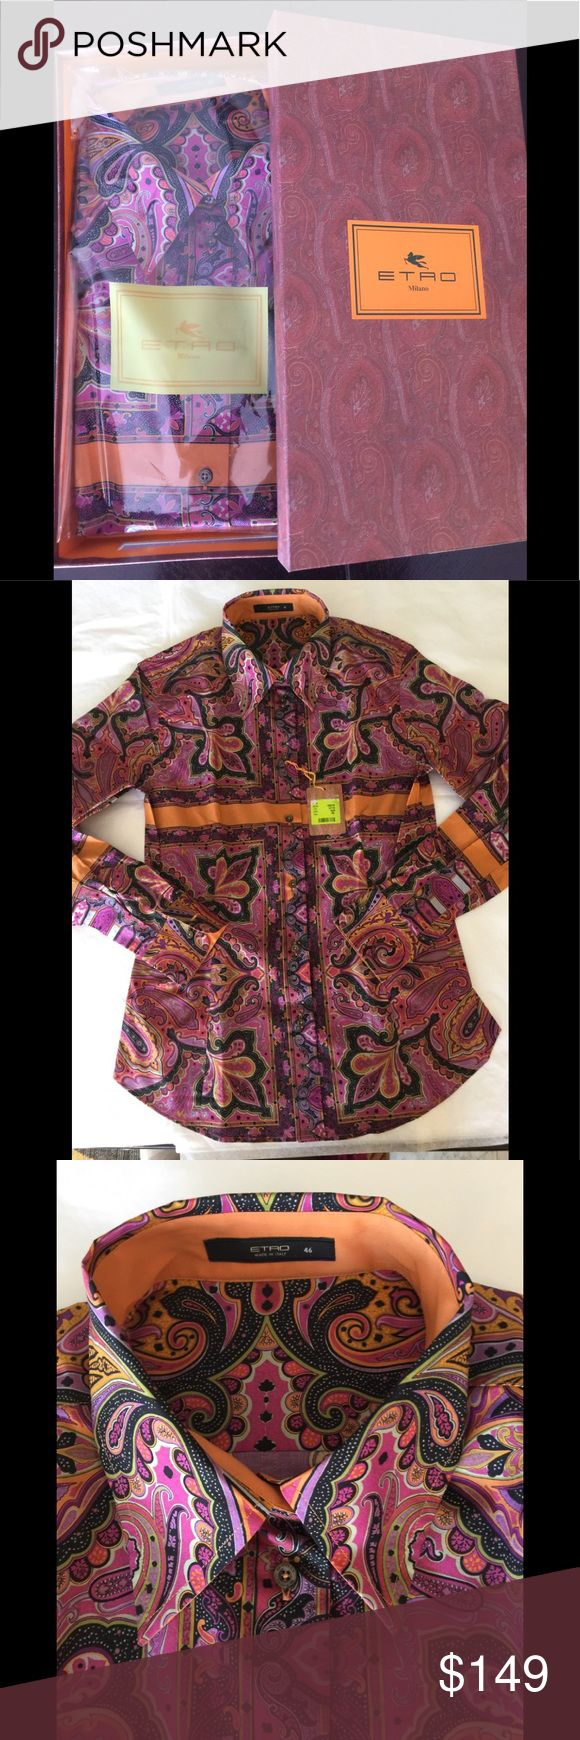 ETRO Italy lady's button down shirts size 46 Nice paisley button down shirts size 46 Brand new w/box Etro Tops Button Down Shirts